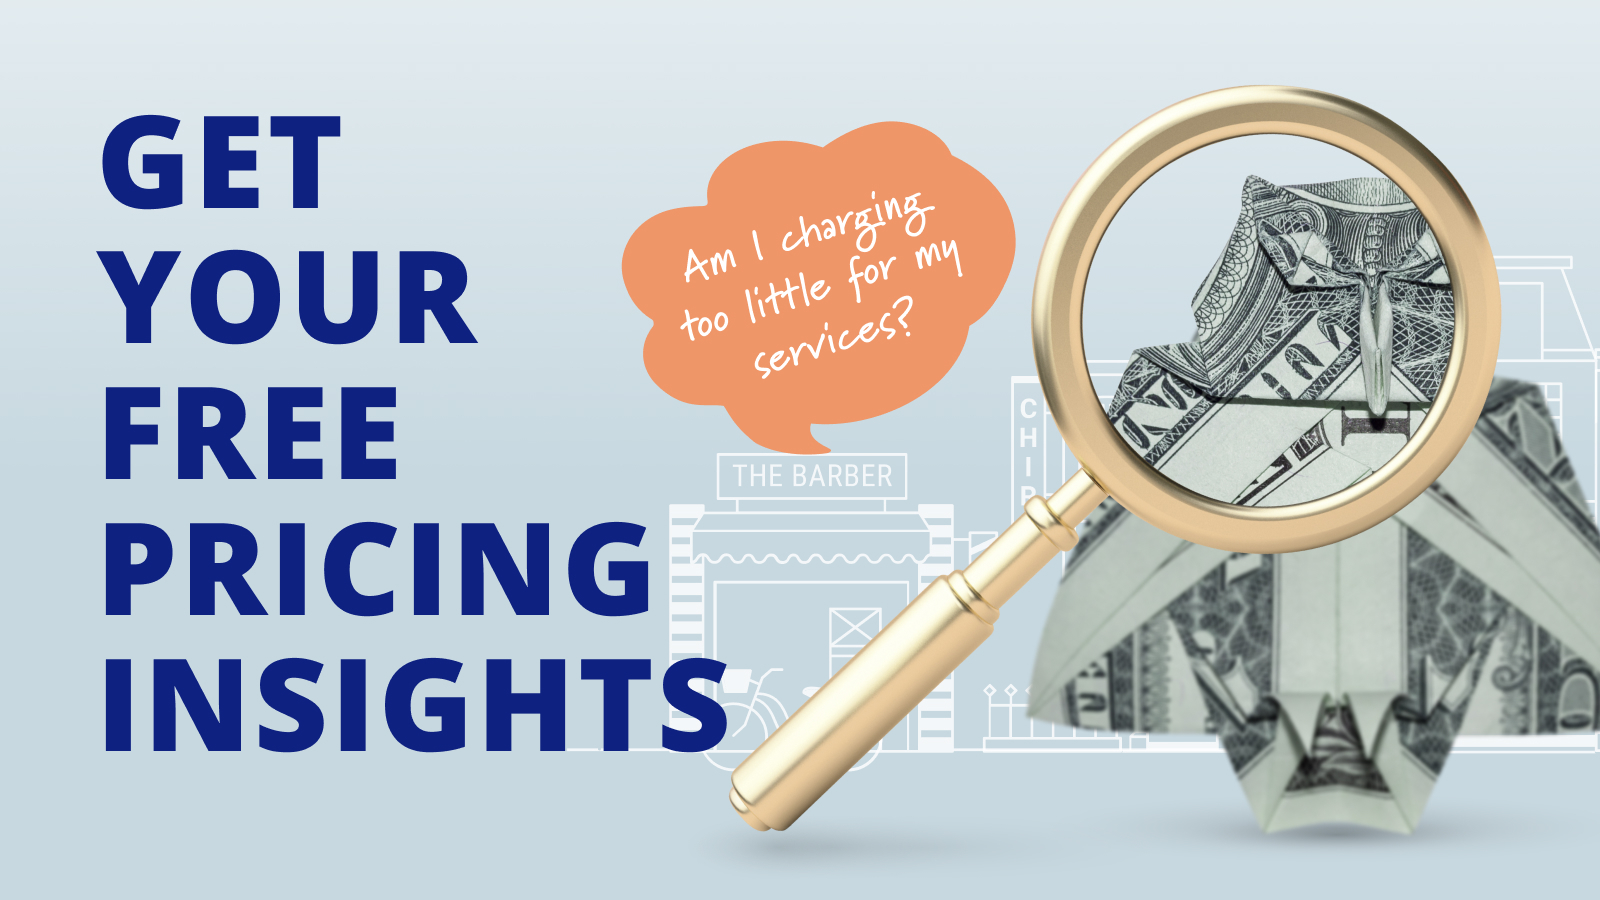 Pricing Insights for Hair, Beauty and Wellness Businesses